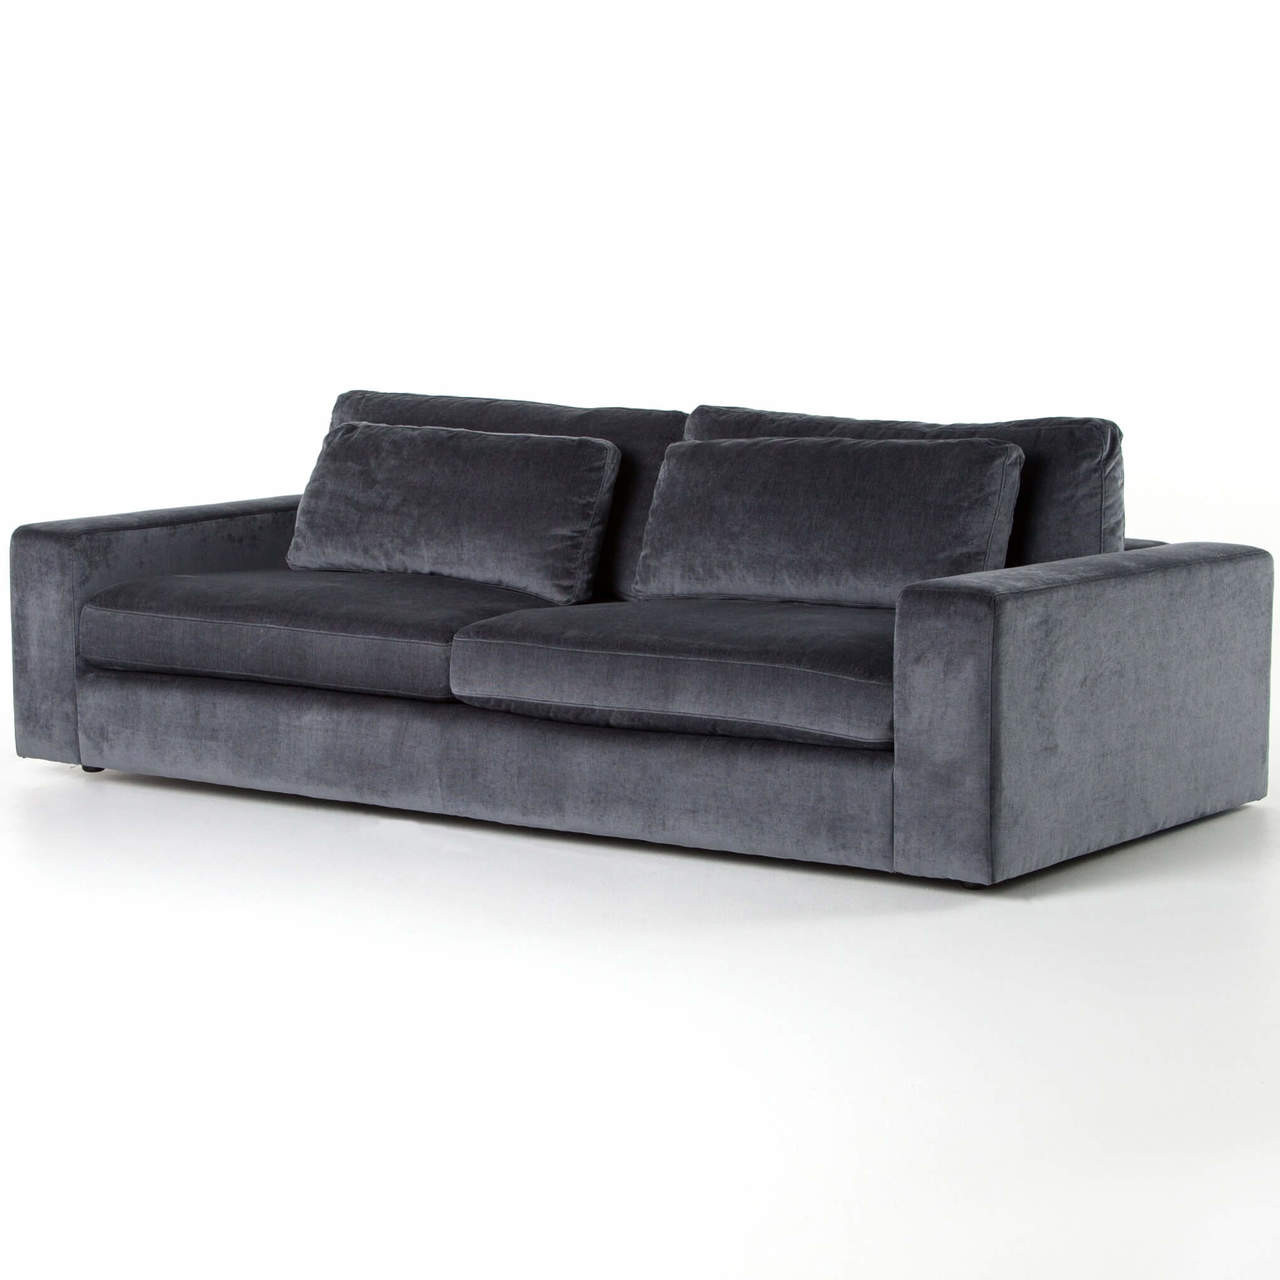 Contemporary Couch Bloor Contemporary Charcoal Grey Velvet Upholstered Sofa 98